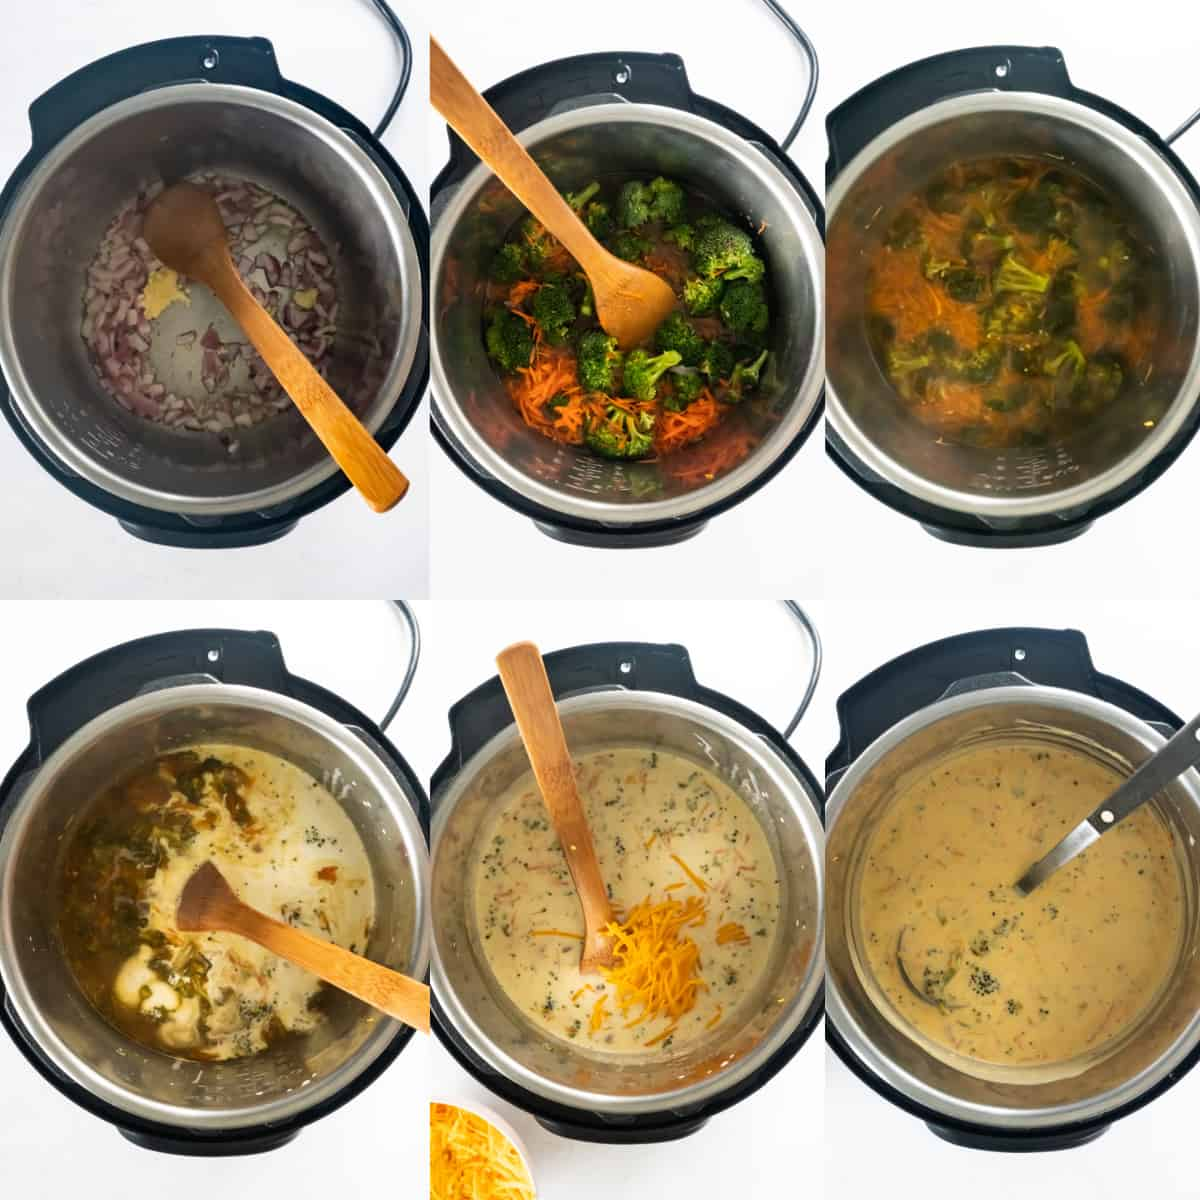 cooking the broccoli and cheese soup in the instant pot, adding ingredients and stiring